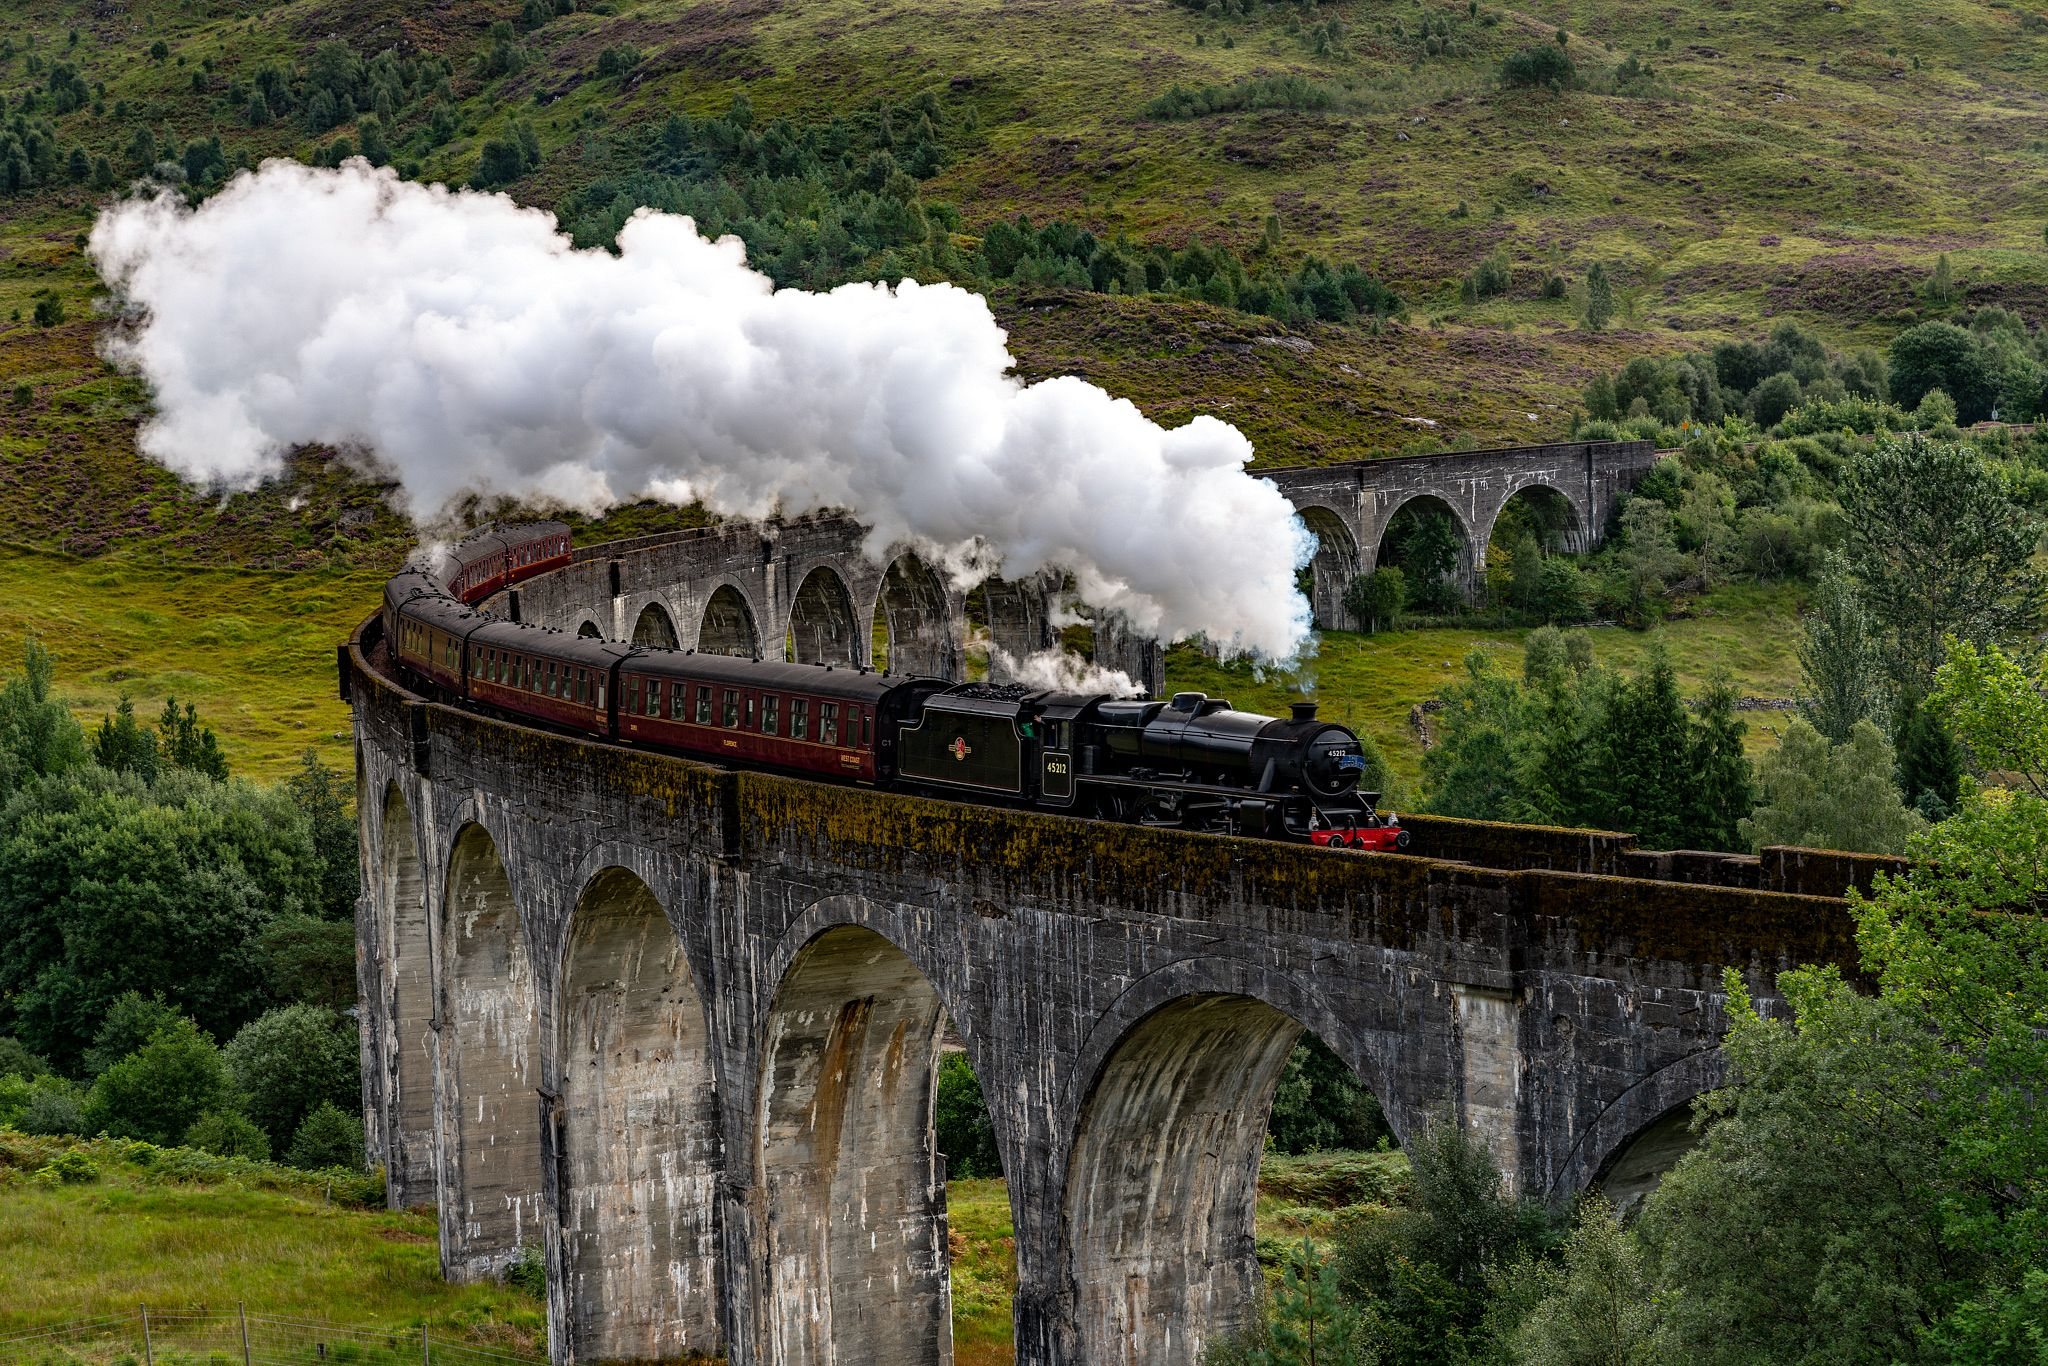 Jacobite Steam Train on the Glenfinnan Viaduct